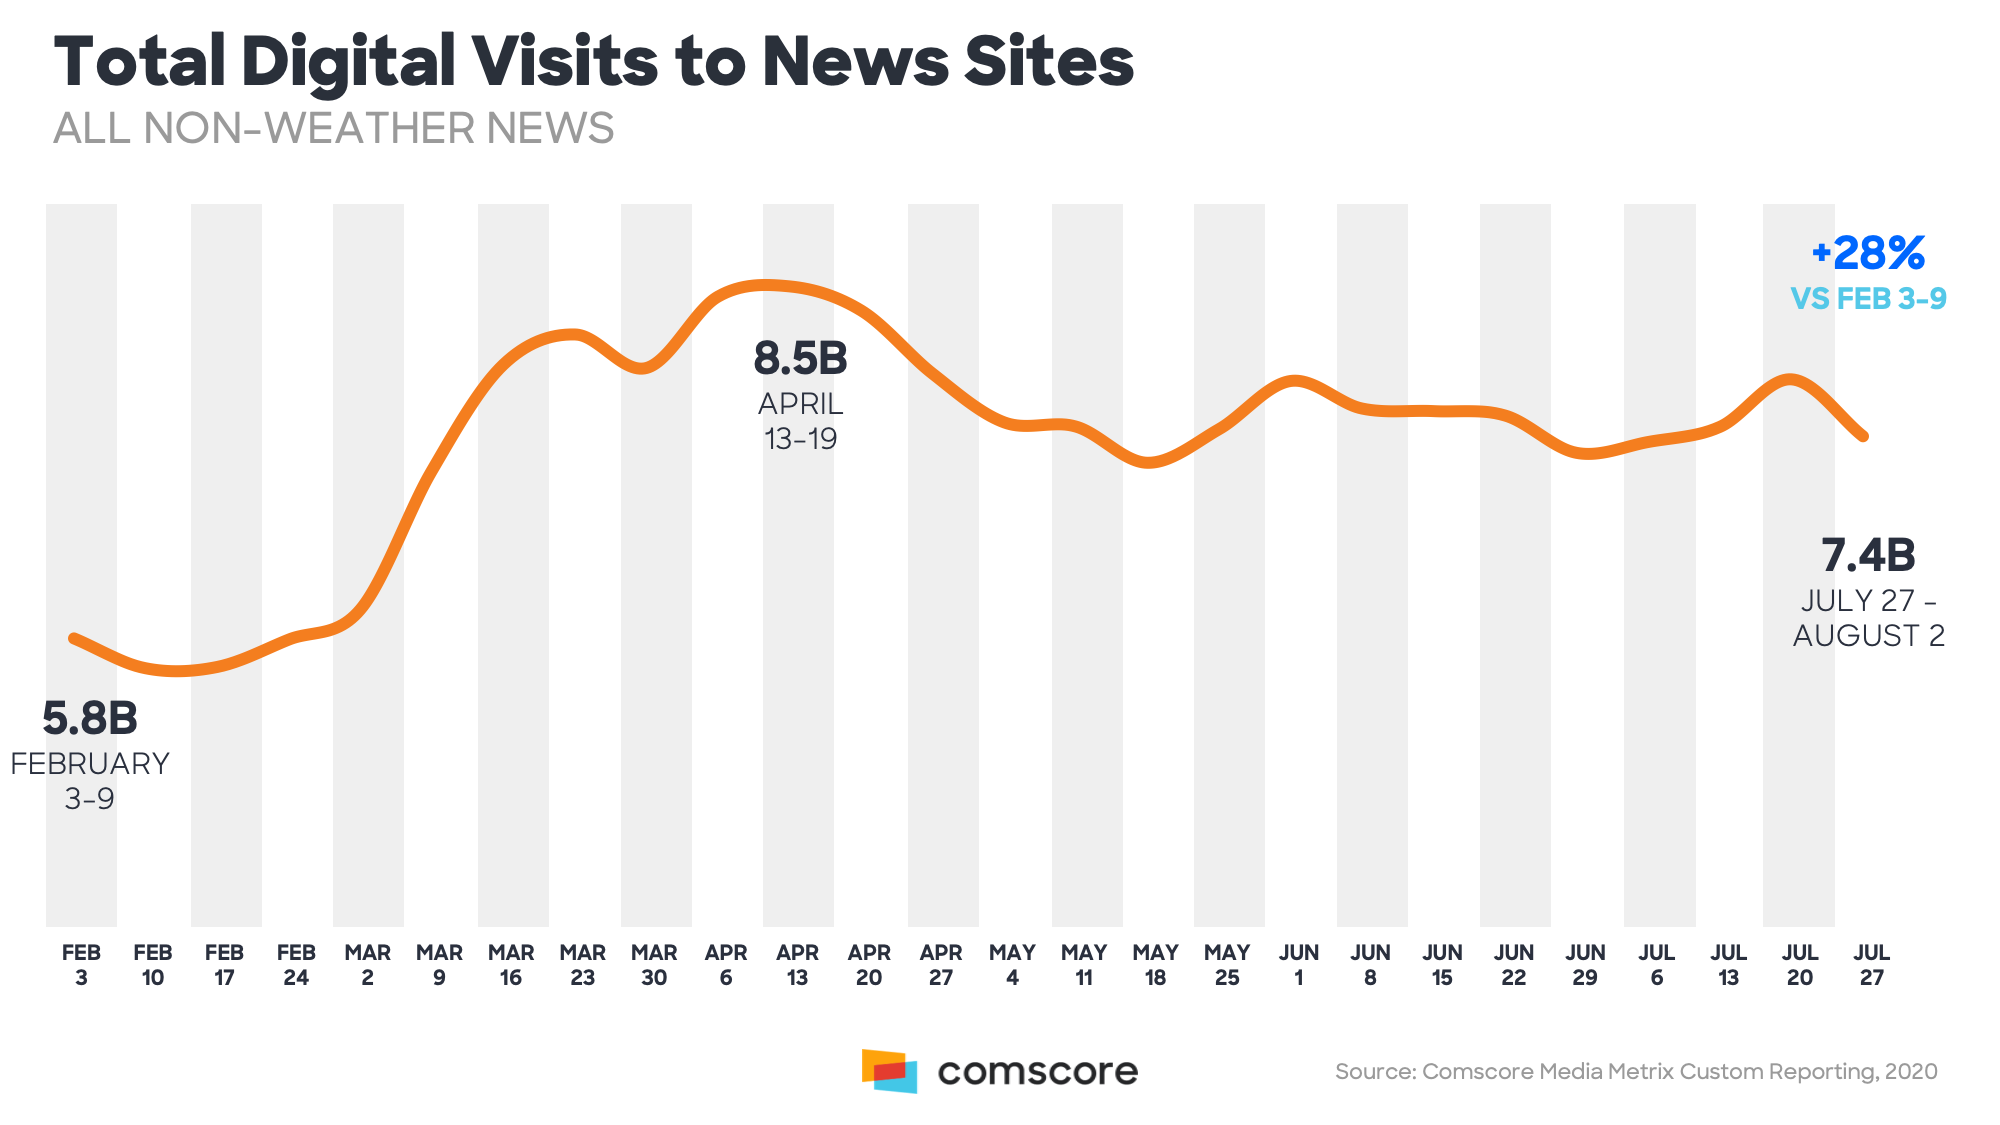 Total Digital Visits to News Sites